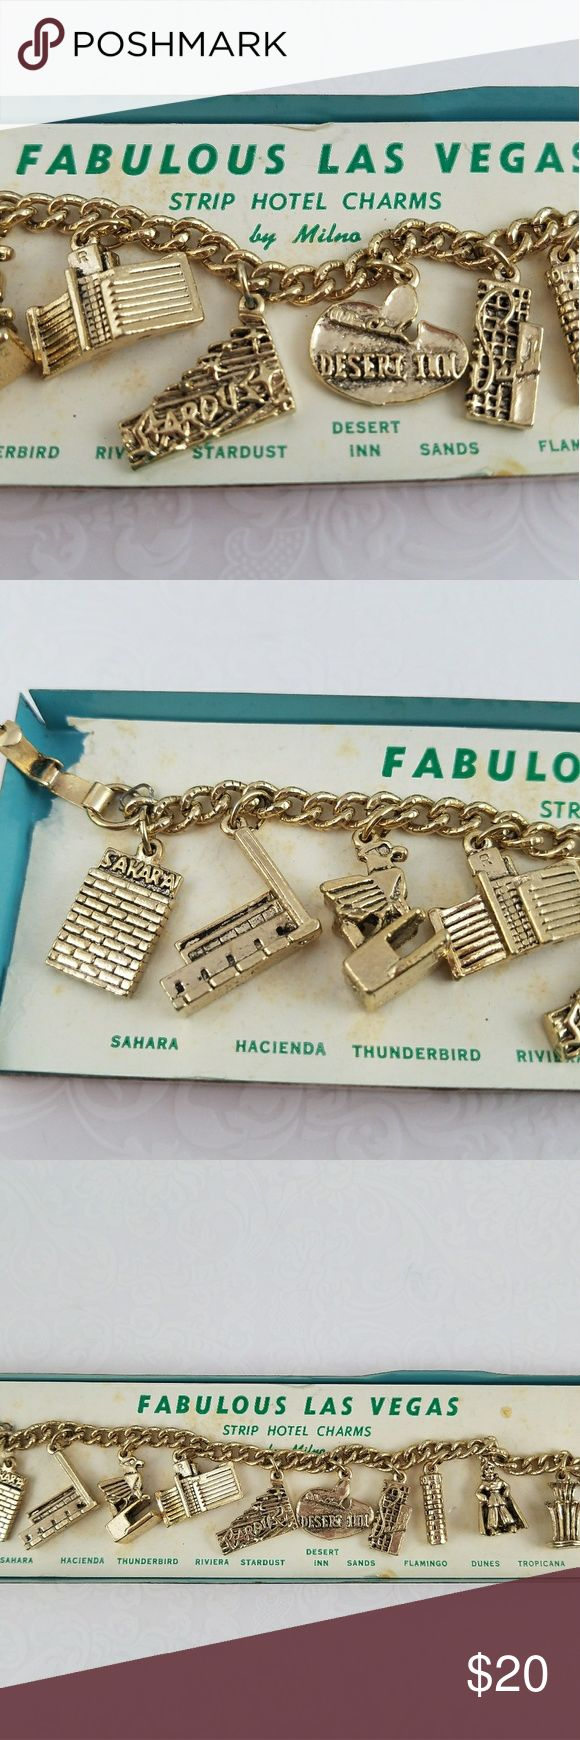 """60s """"Fabulous Las Vegas"""" Vintage Charm Bracelet Fabulous Las Vegas charm Bracelet. Charms with the big hotels from the sixties!  In original packaging!  A charm for each of the following hotels;  Sahara. Hacienda. Thunderbird. Riviera. Stardust. Desert Inn. Sands. Flamingo. Dunes. Tropicana.  A great reminder of the old glory days of Vegas  Please look at photos as this is part of the description and is the item you will be receiving. Vintage Jewelry Bracelets"""